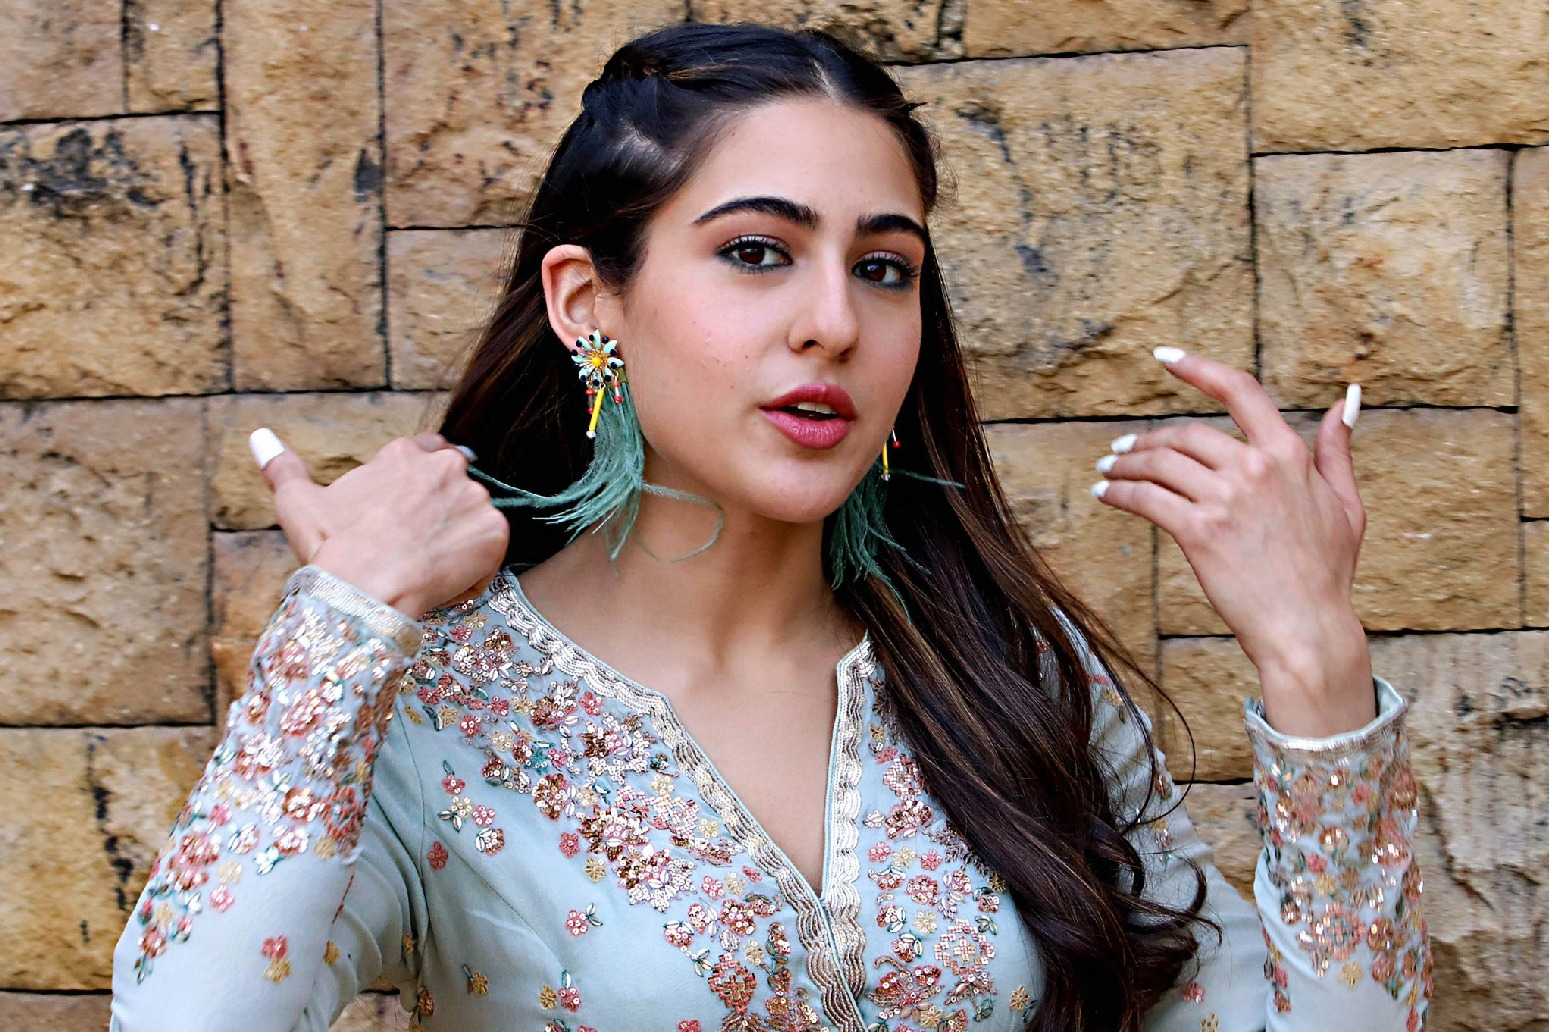 I was in date with Sushant Singh Rajput says Sara Ali Khan